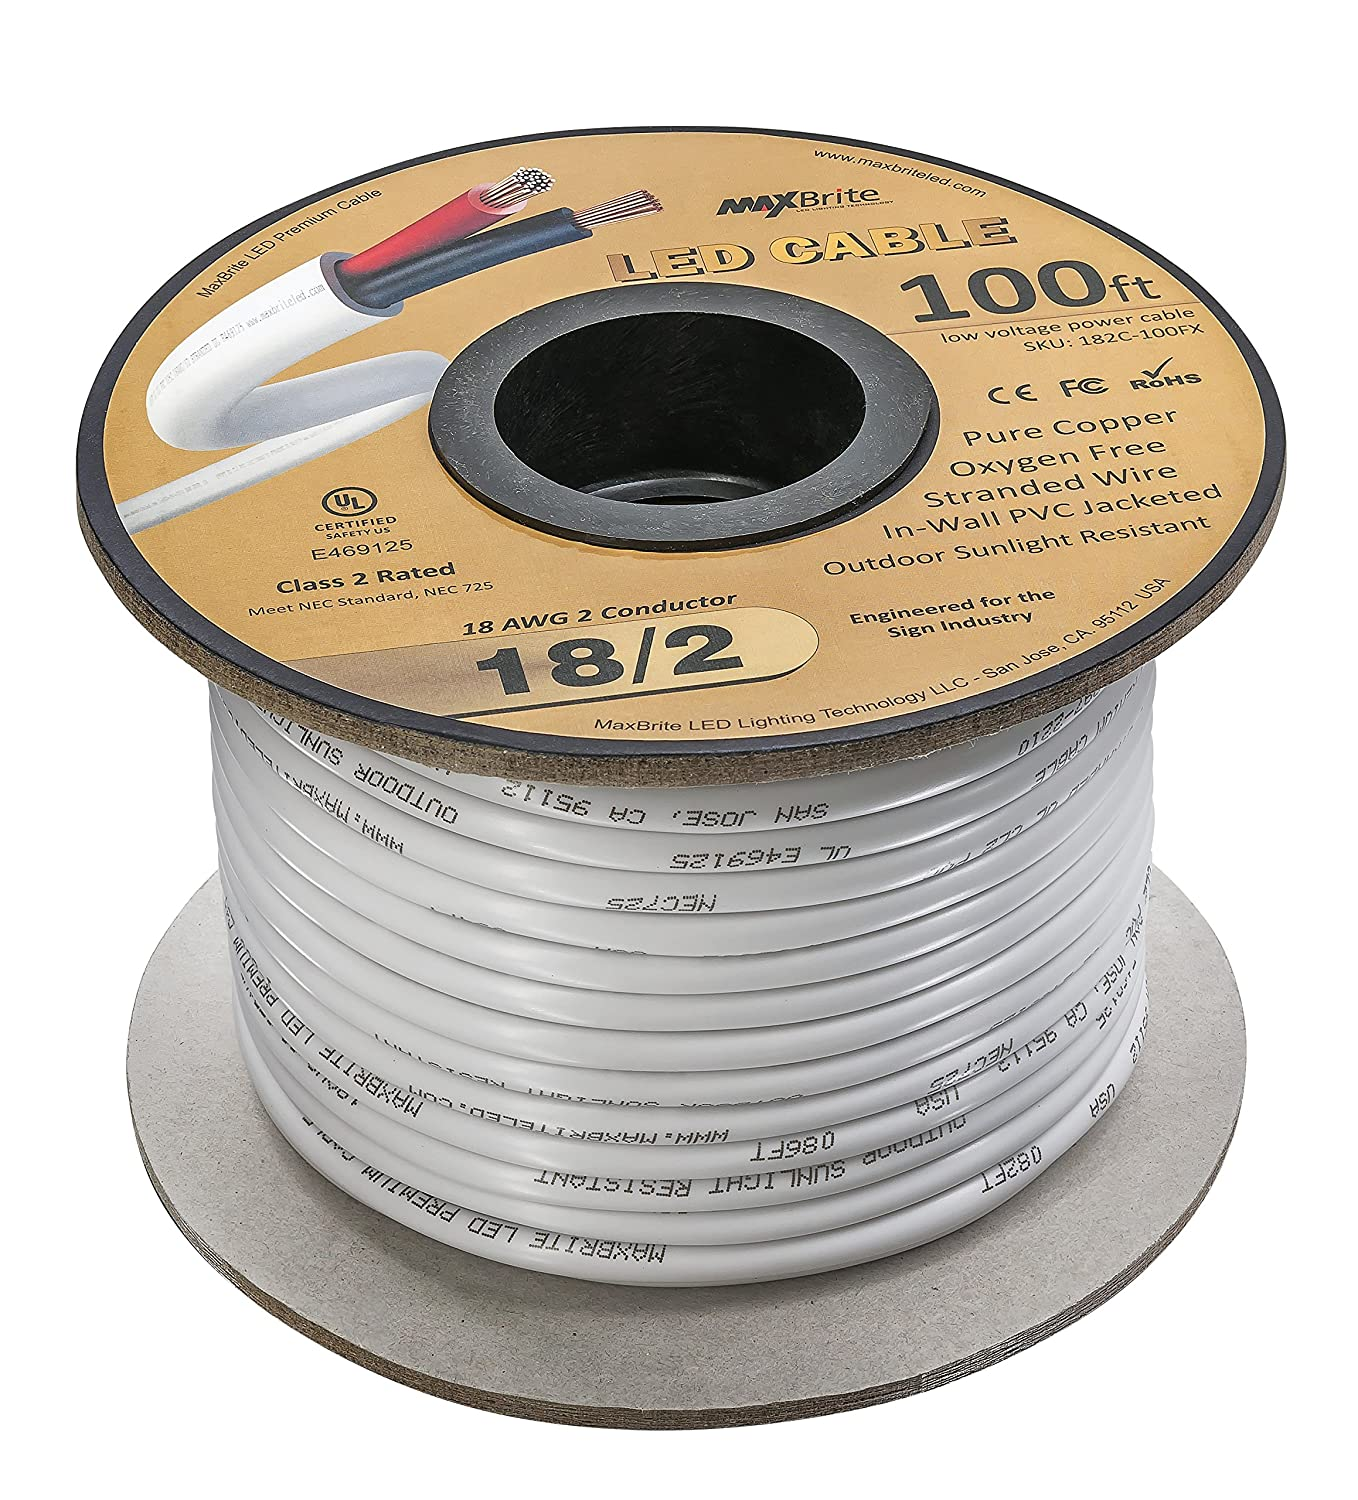 Amazon.com: 18AWG Low Voltage LED Cable, 2 Conductor, Outdoor Rated ...